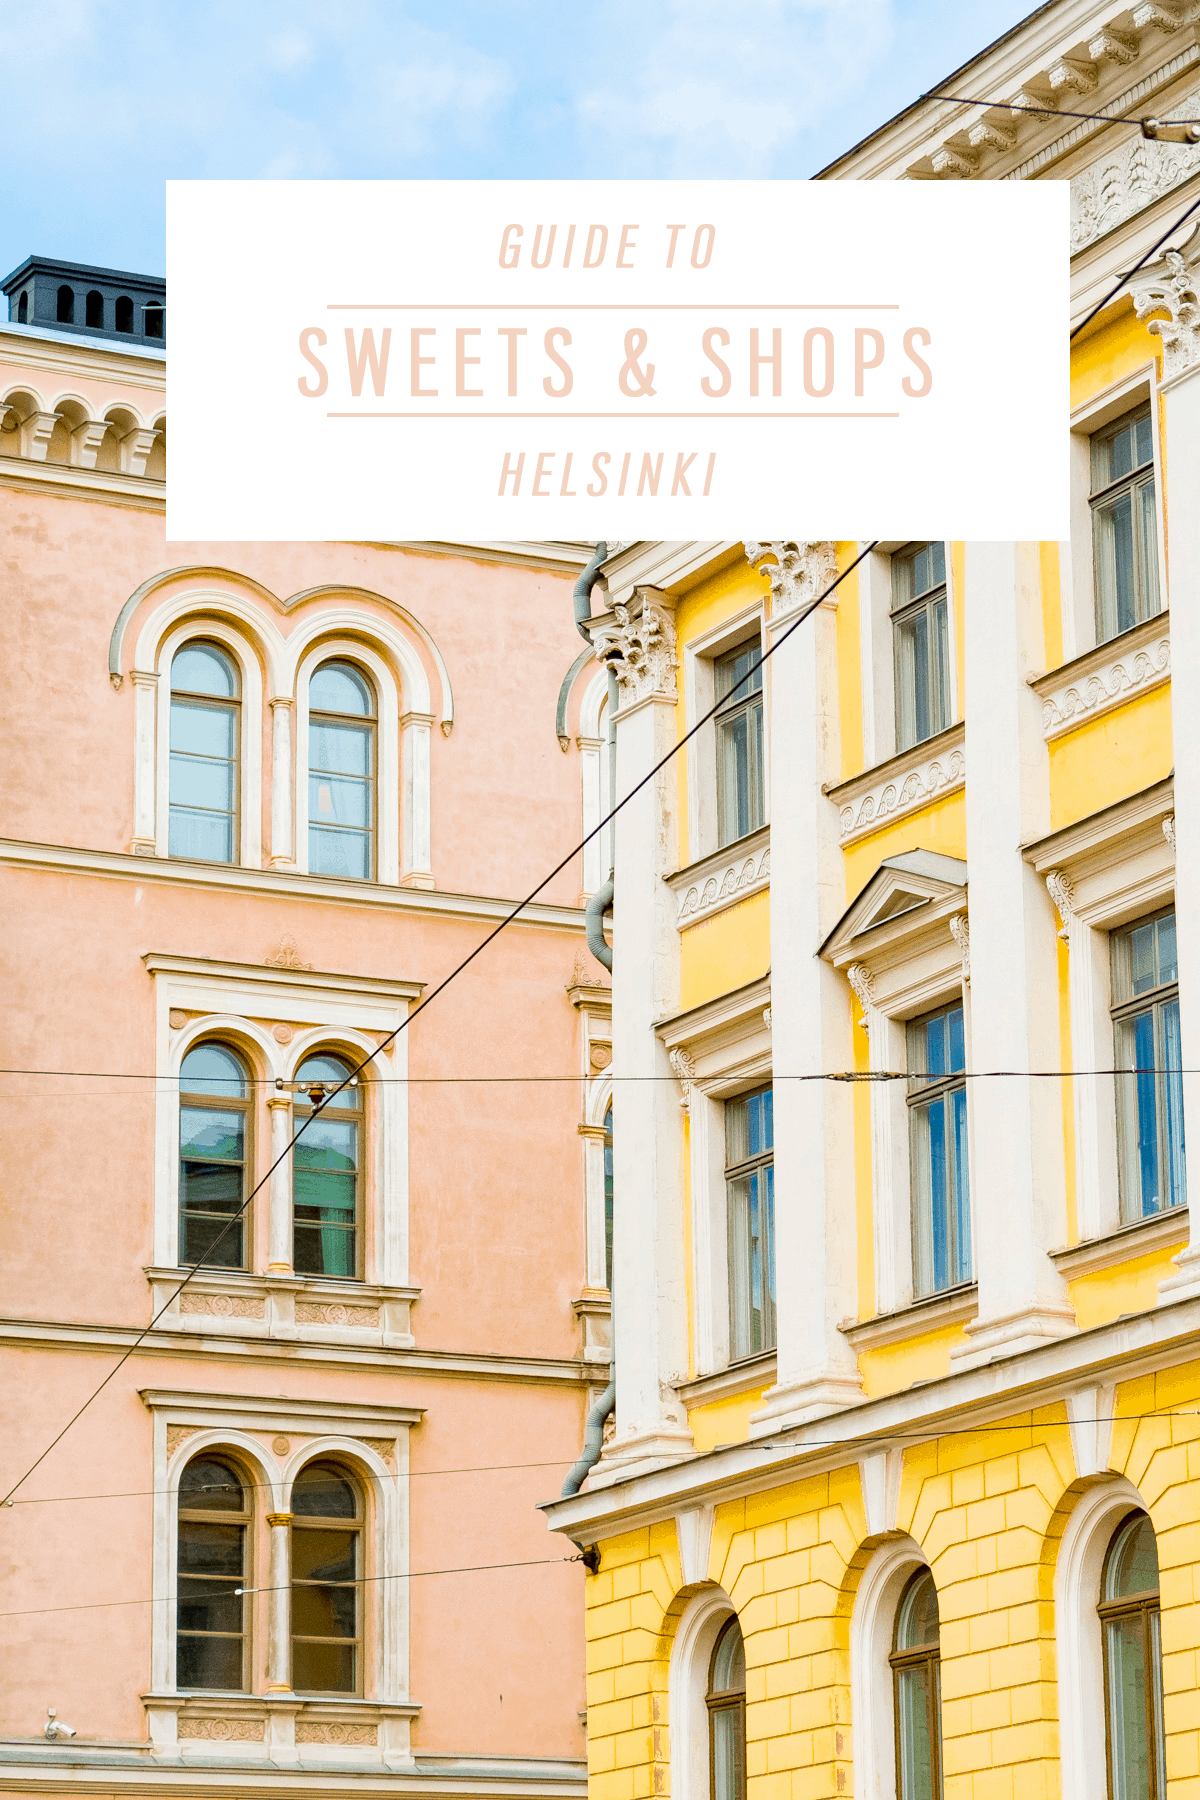 The Best Shops & Sweets in Helsinki by Ashley Rose of Sugar & Cloth, an award winning DIY, travel, and decor blog.